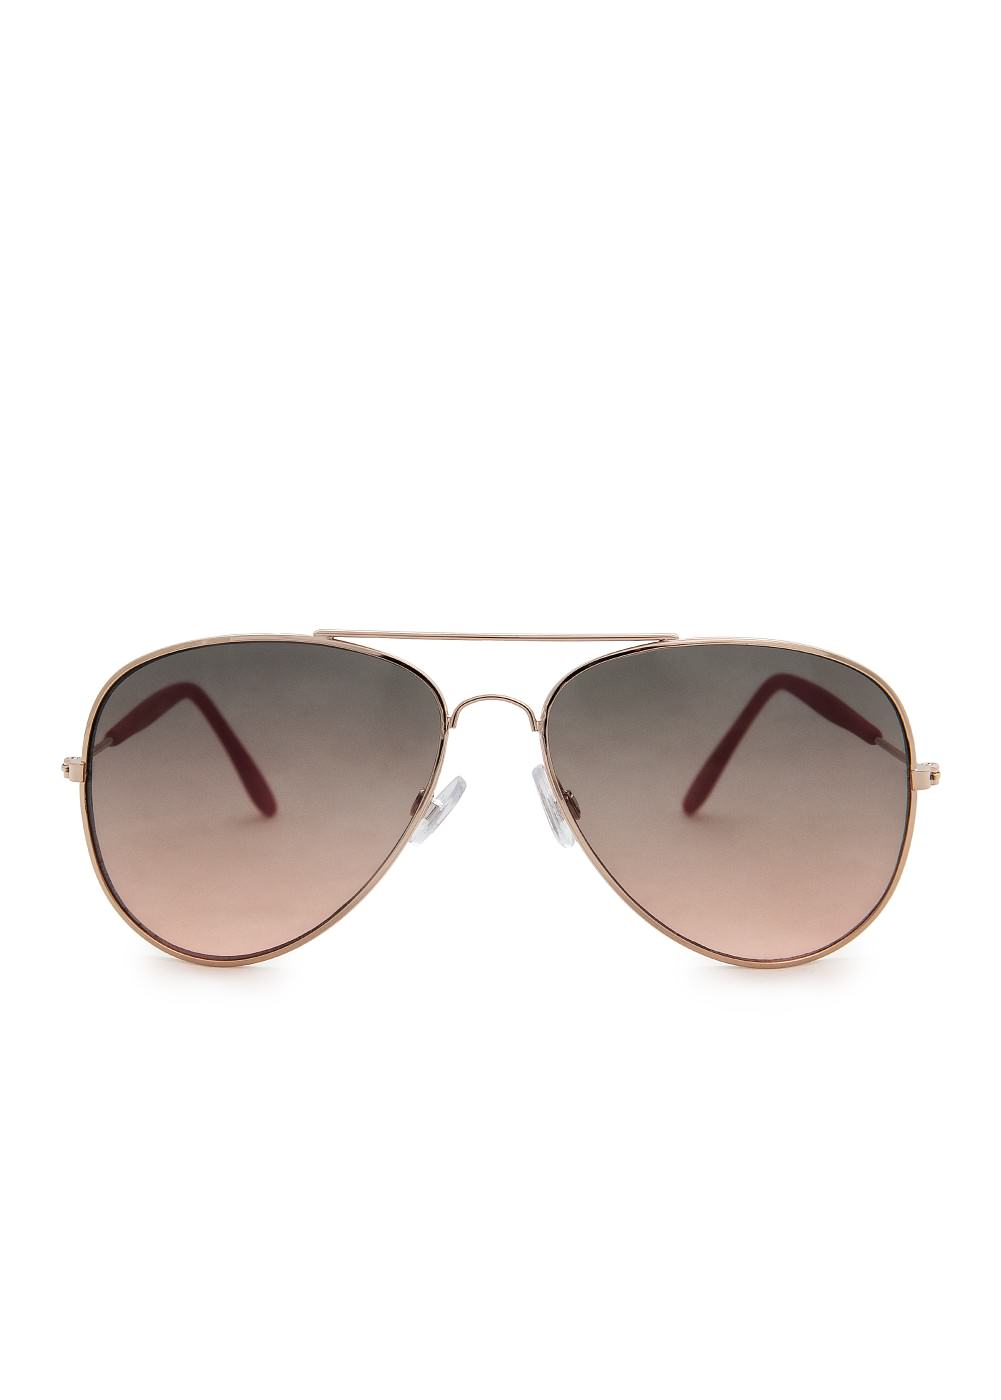 MANGO - Accessories - Sunglasses - Aviator sunglasses